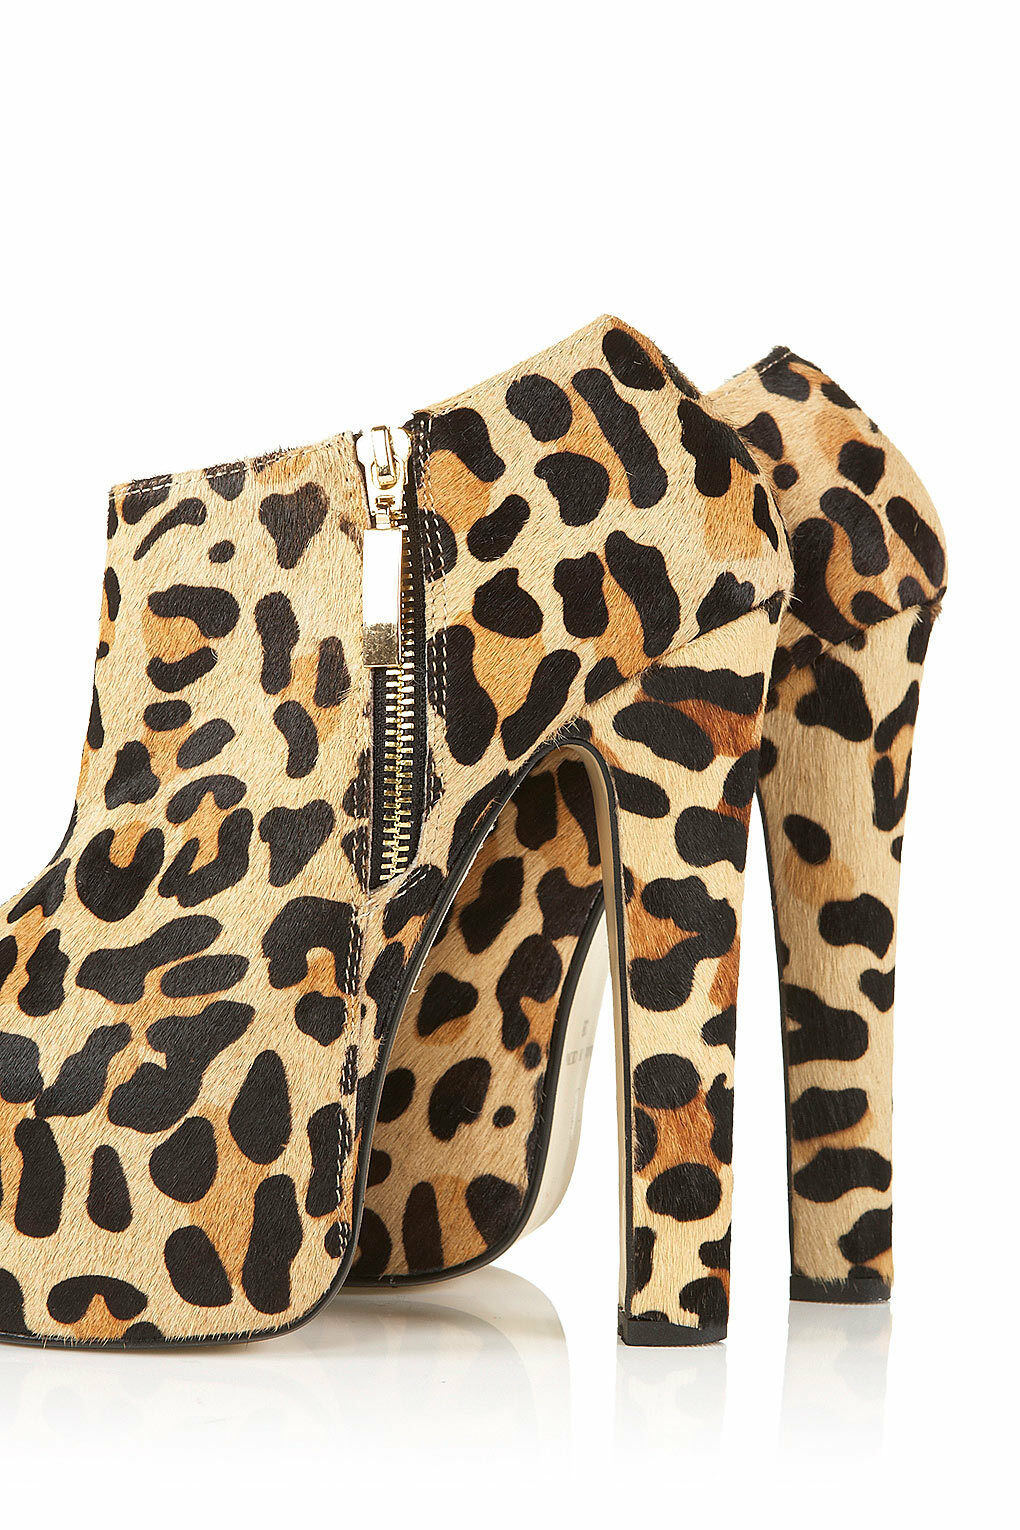 New with Stiefel box TOPSHOP ARISTOCRAT superhigh Stiefel with UK 4 in True Leopard c6c21a